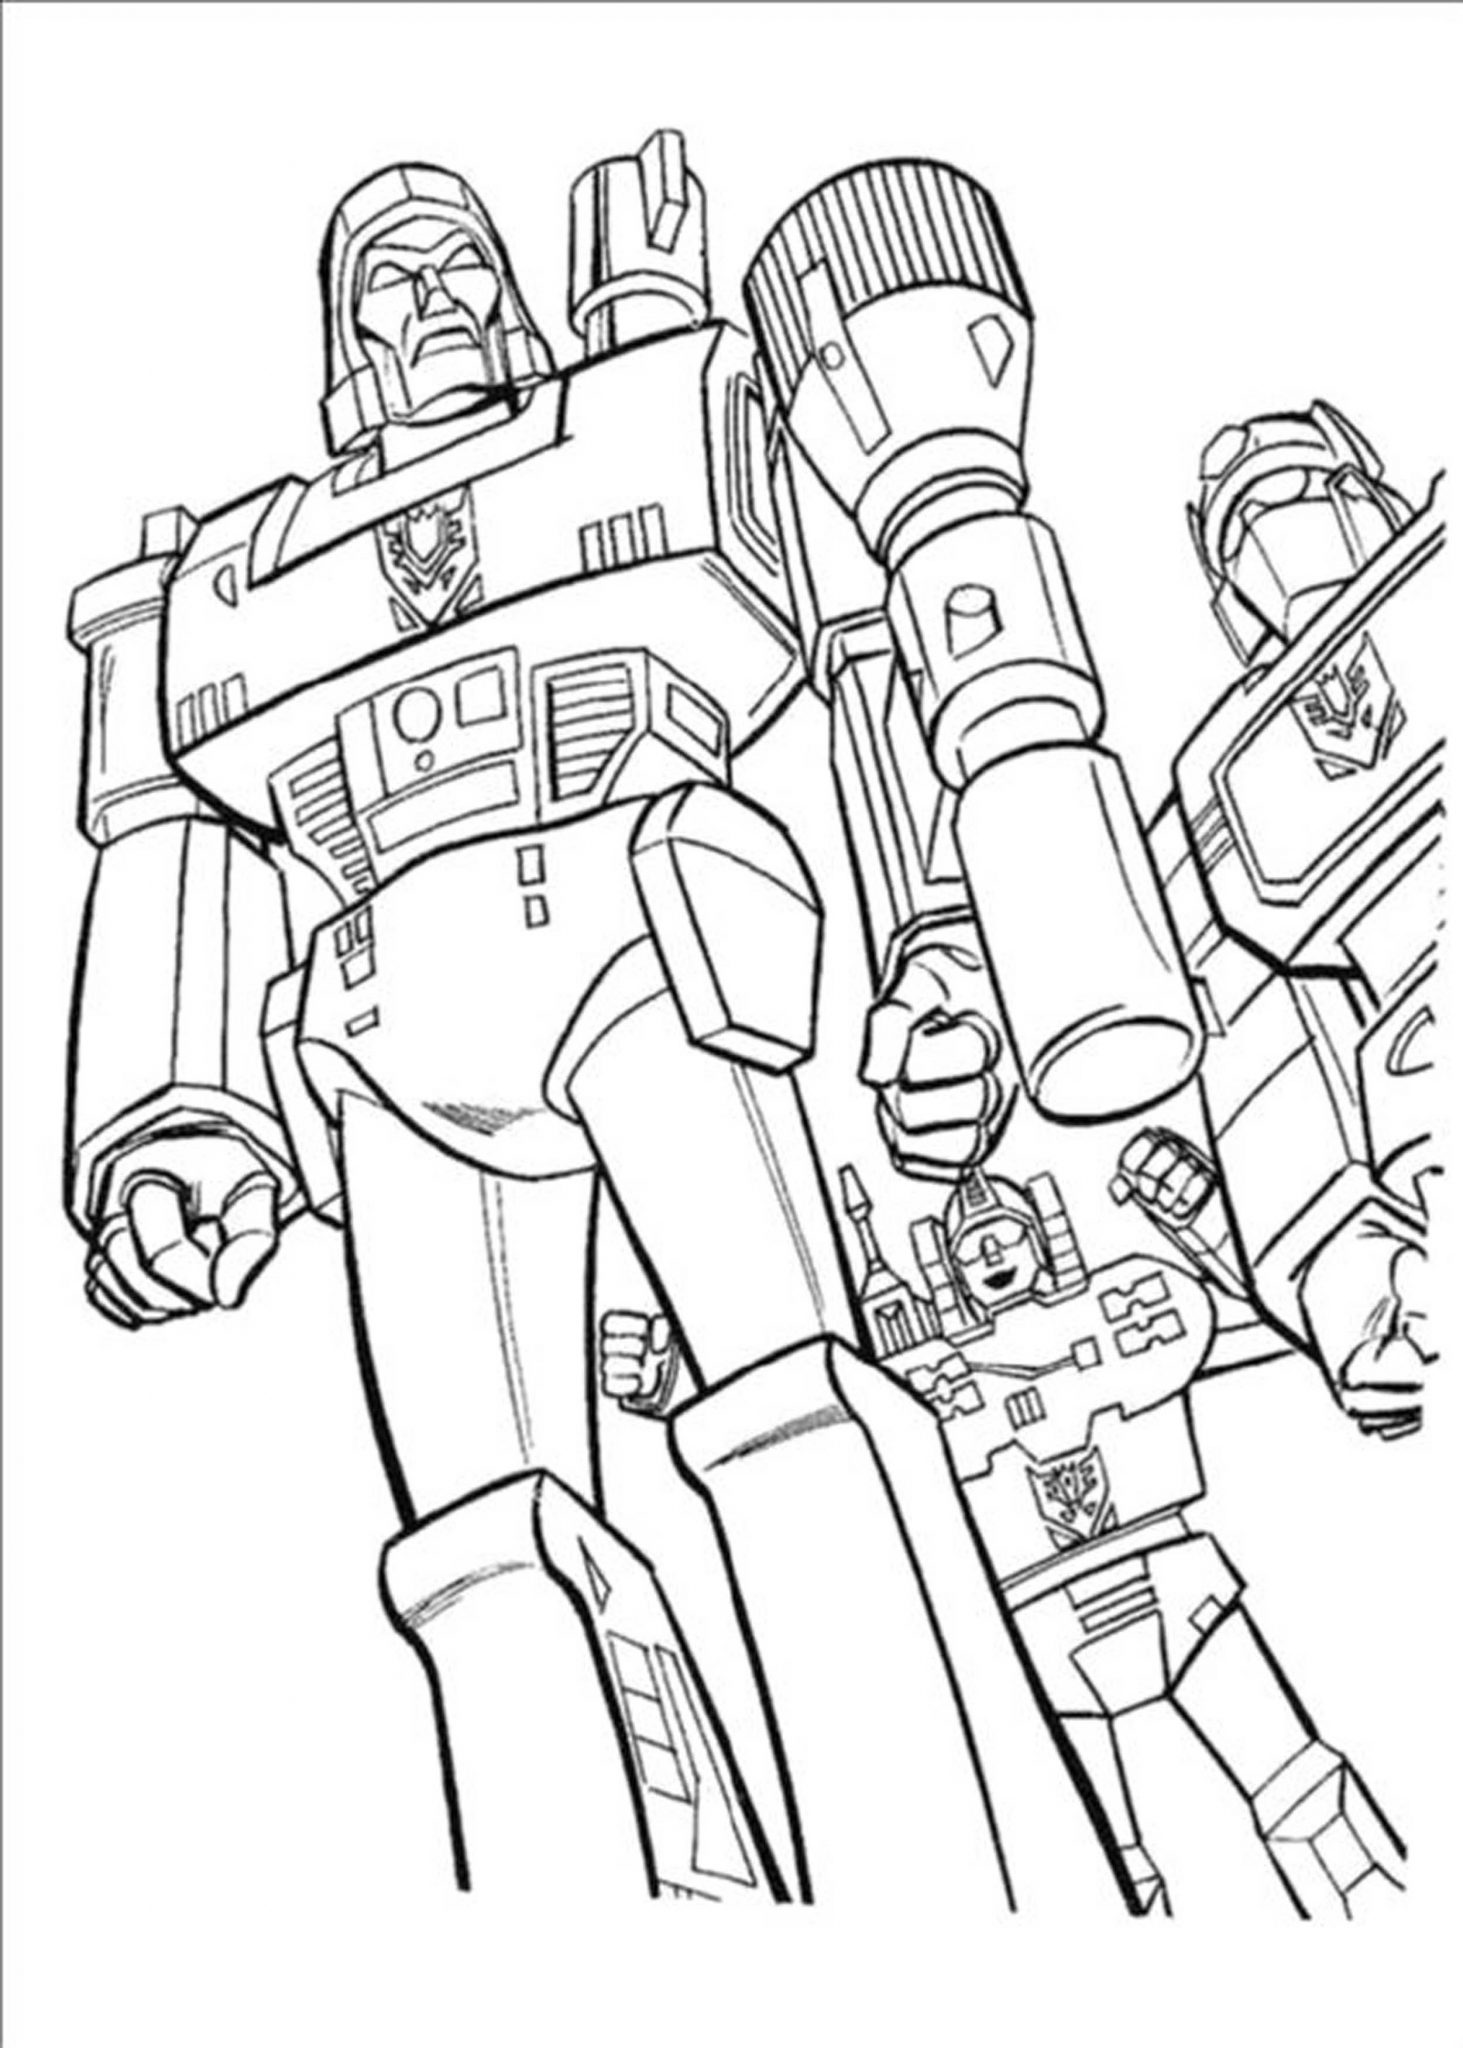 Inviting Kids to Do the Transformers Coloring Pages